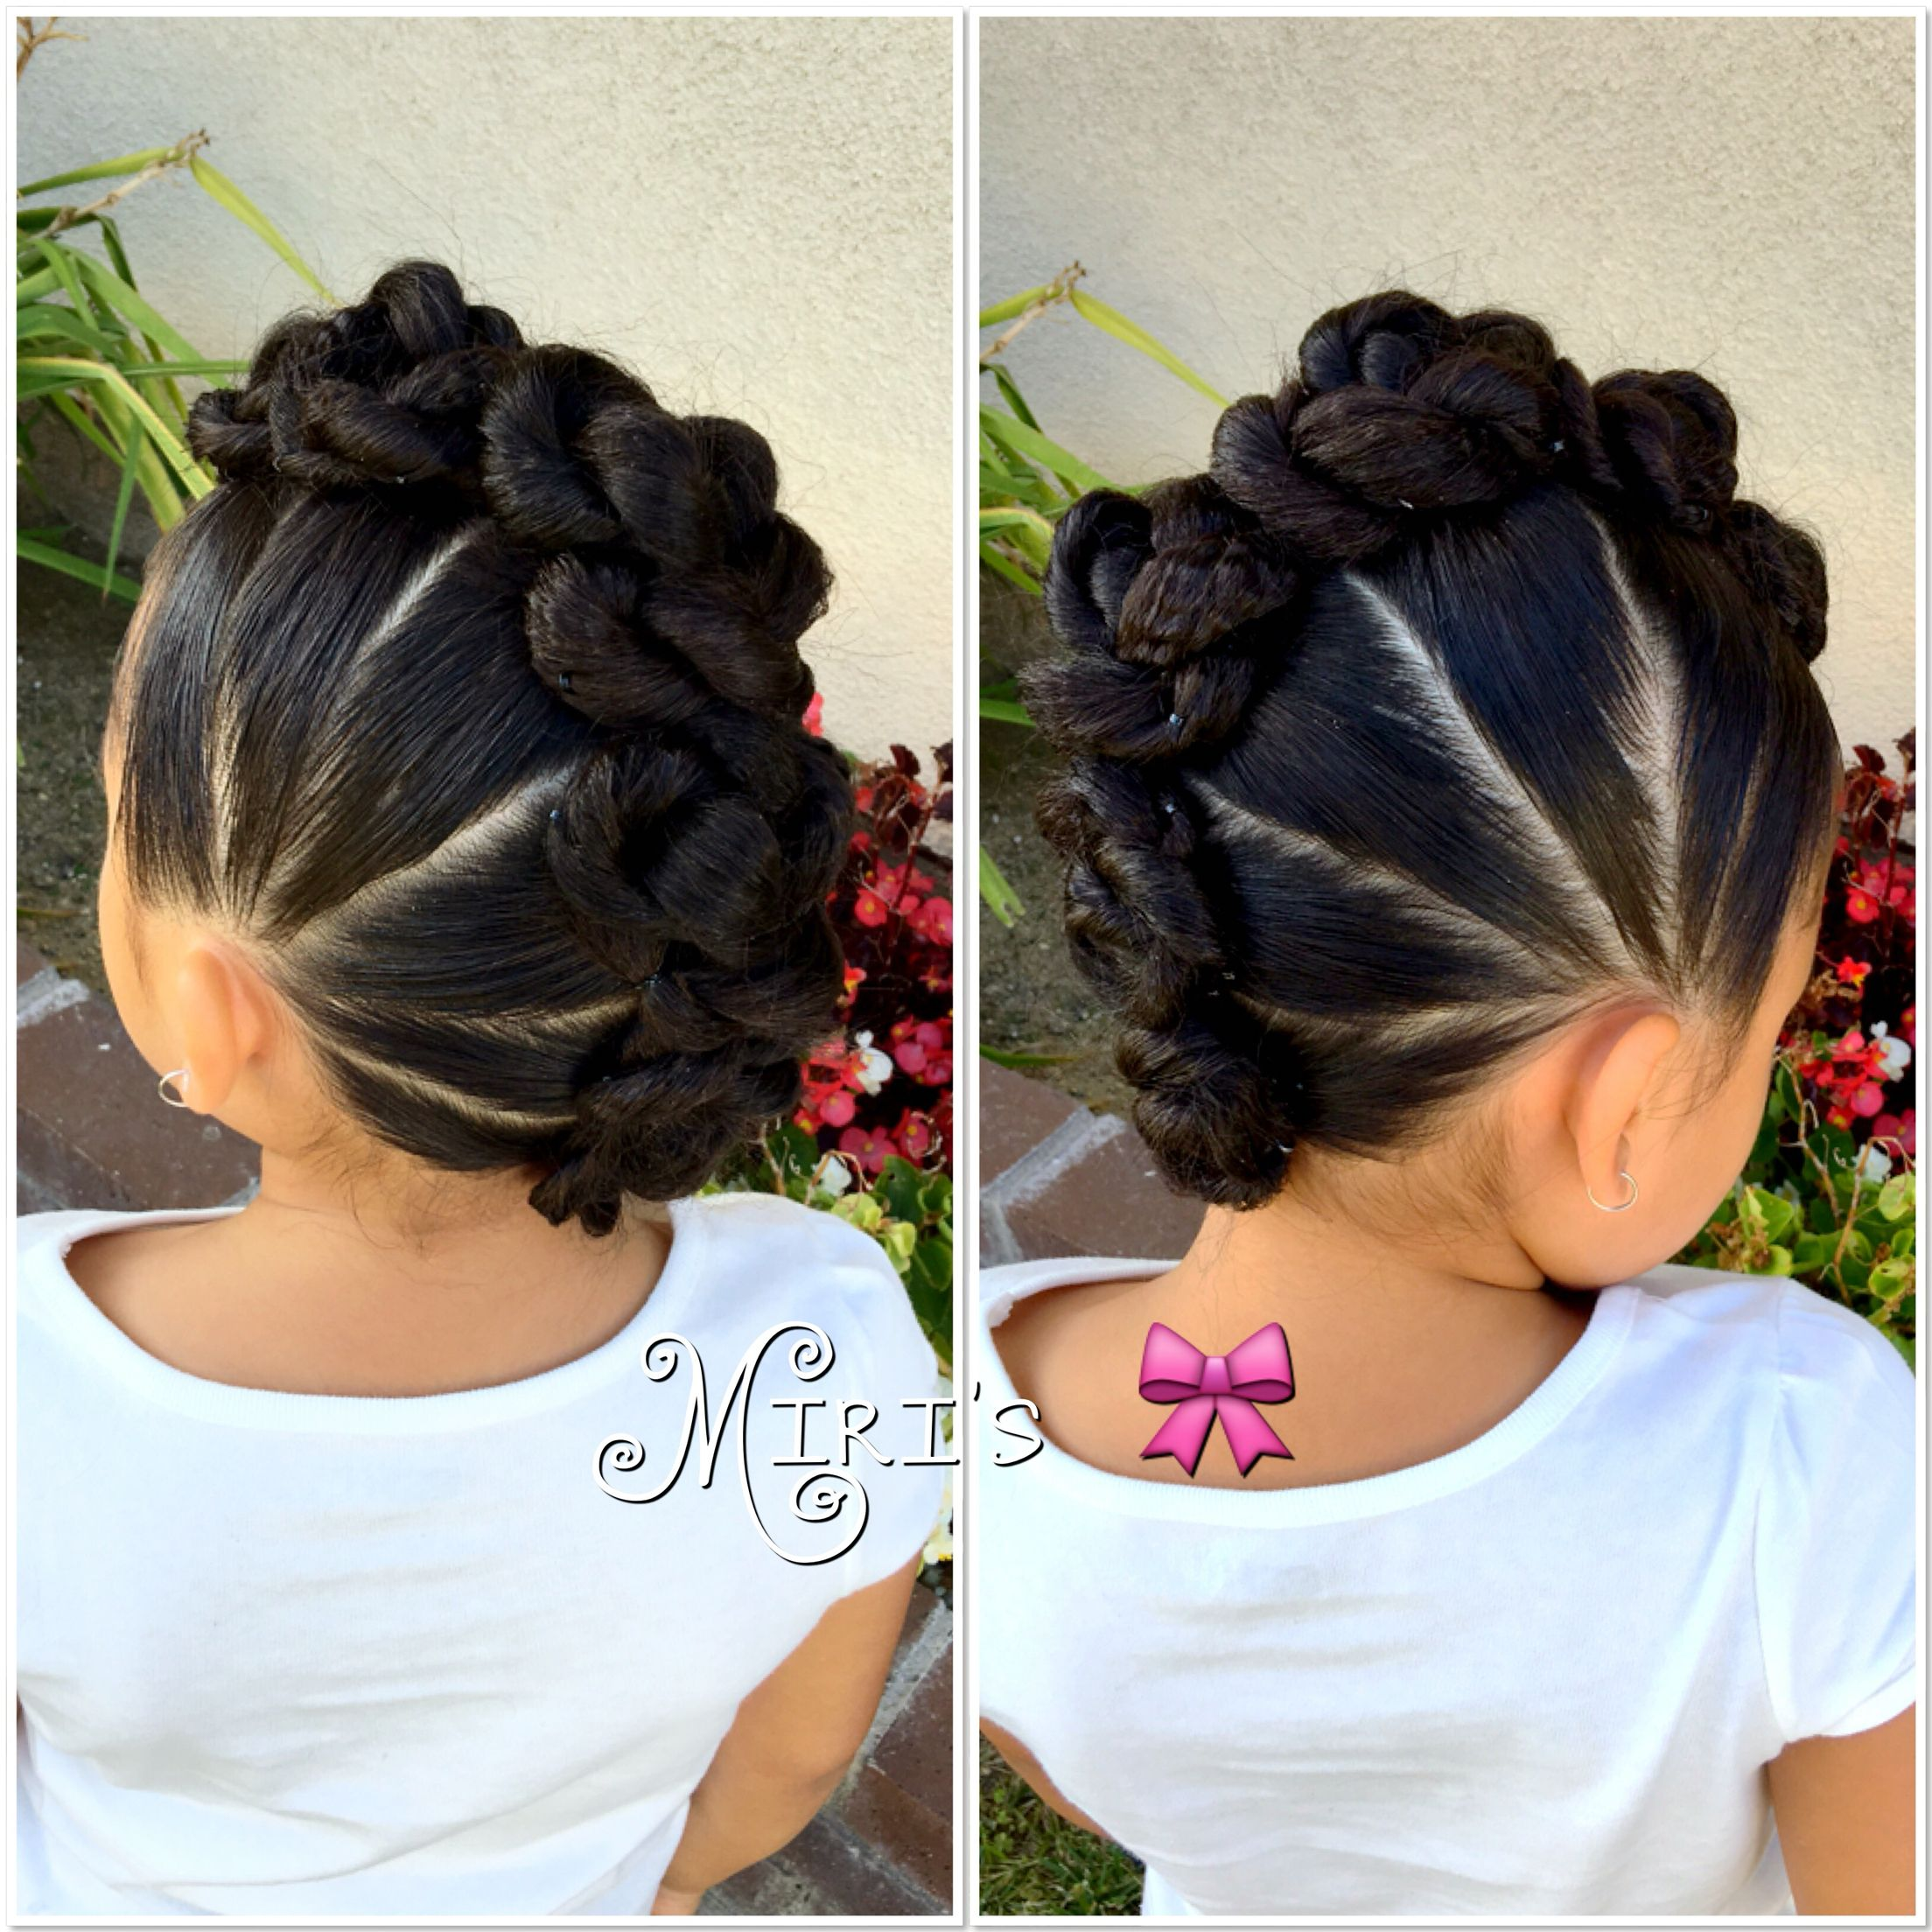 Twisties Hairstyles Magnificent Mohawk With Twists Hair Style For Little Girls  Hair Tips & Hair